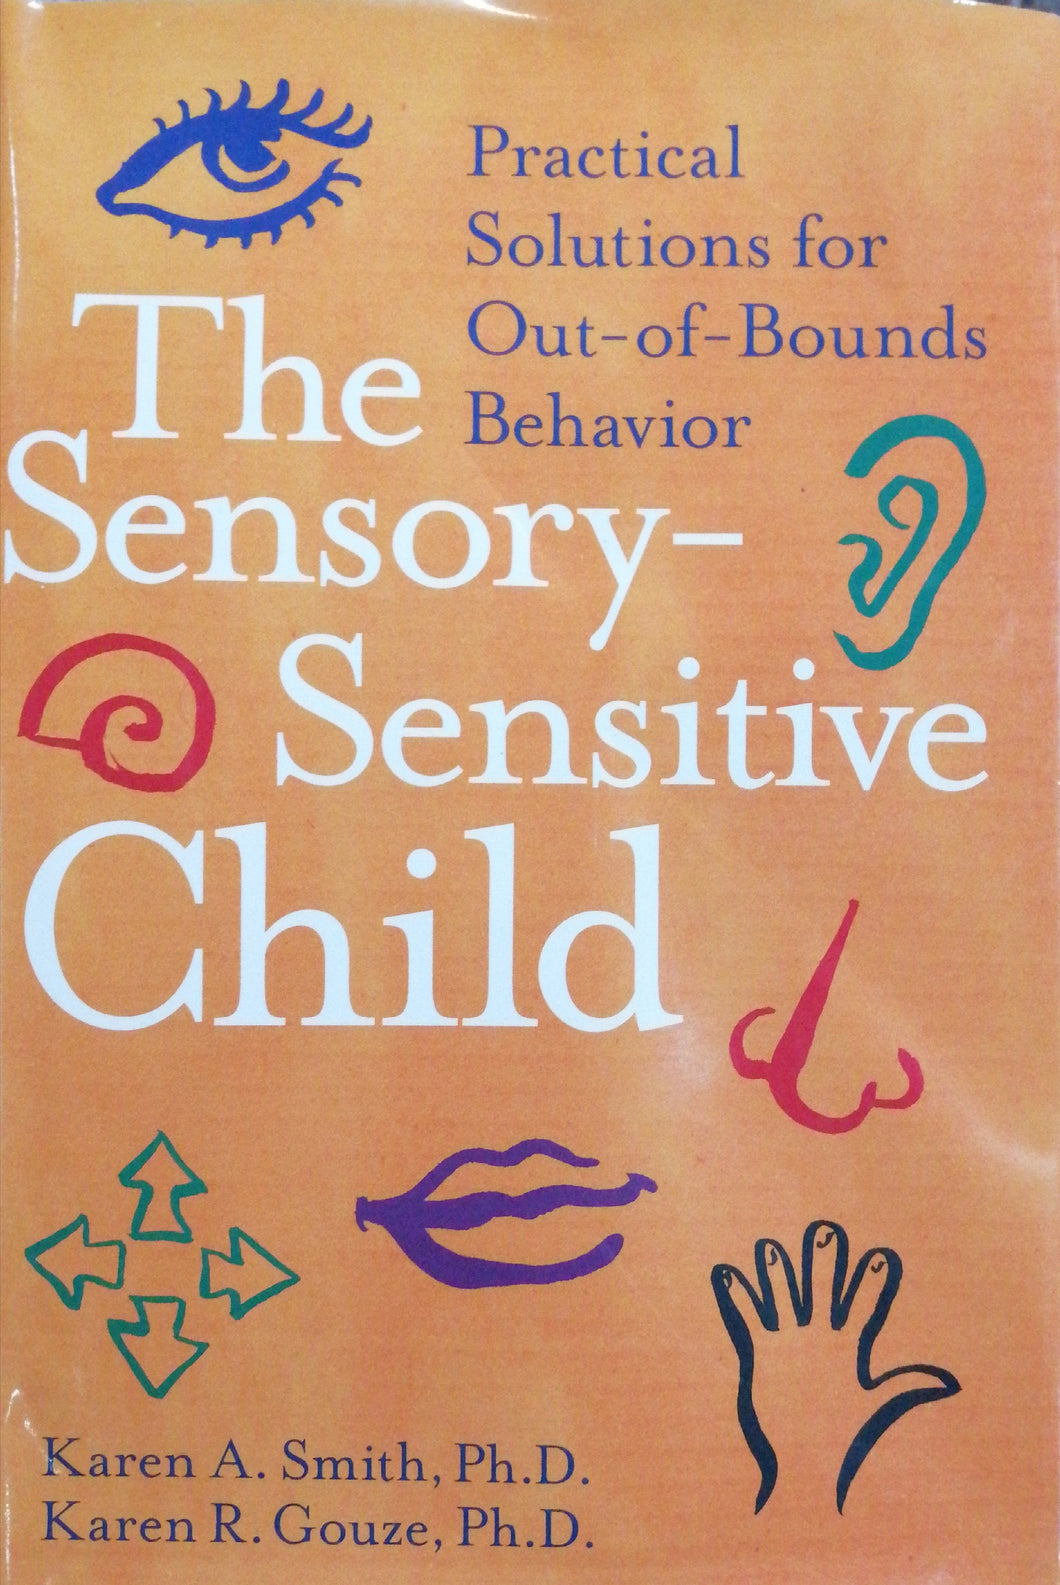 The sensory-sensitive child by: Karen A.Smith ph.d